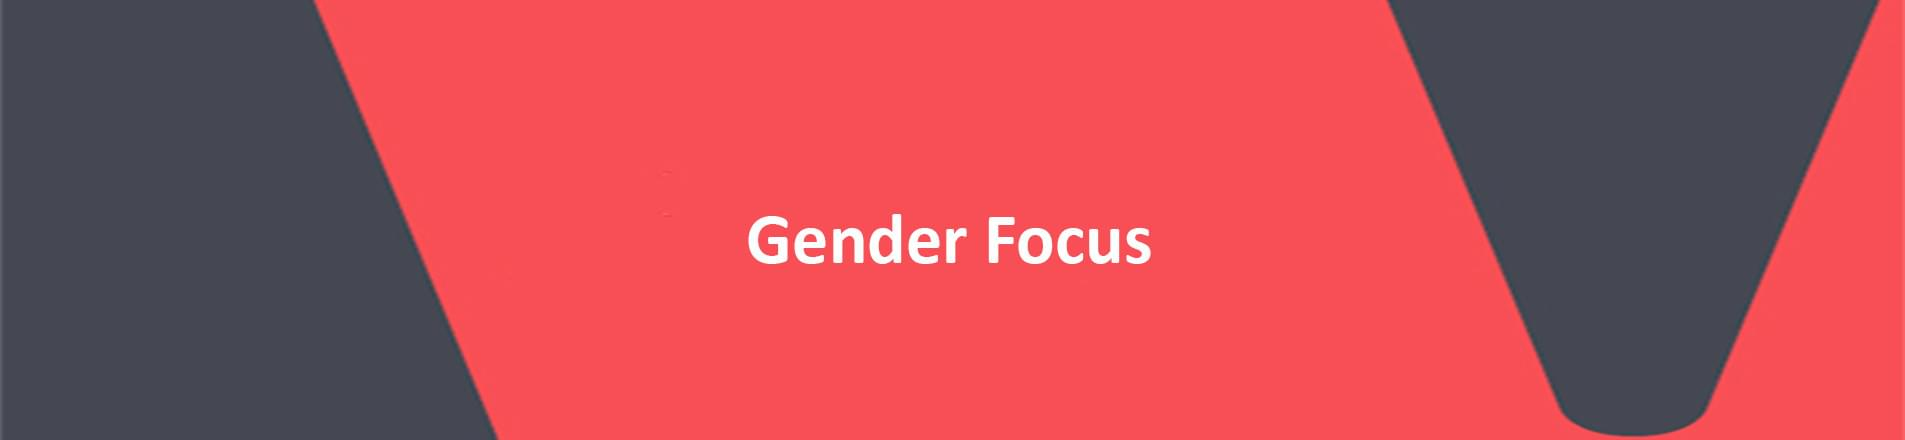 Image of the words gender focus on a red background